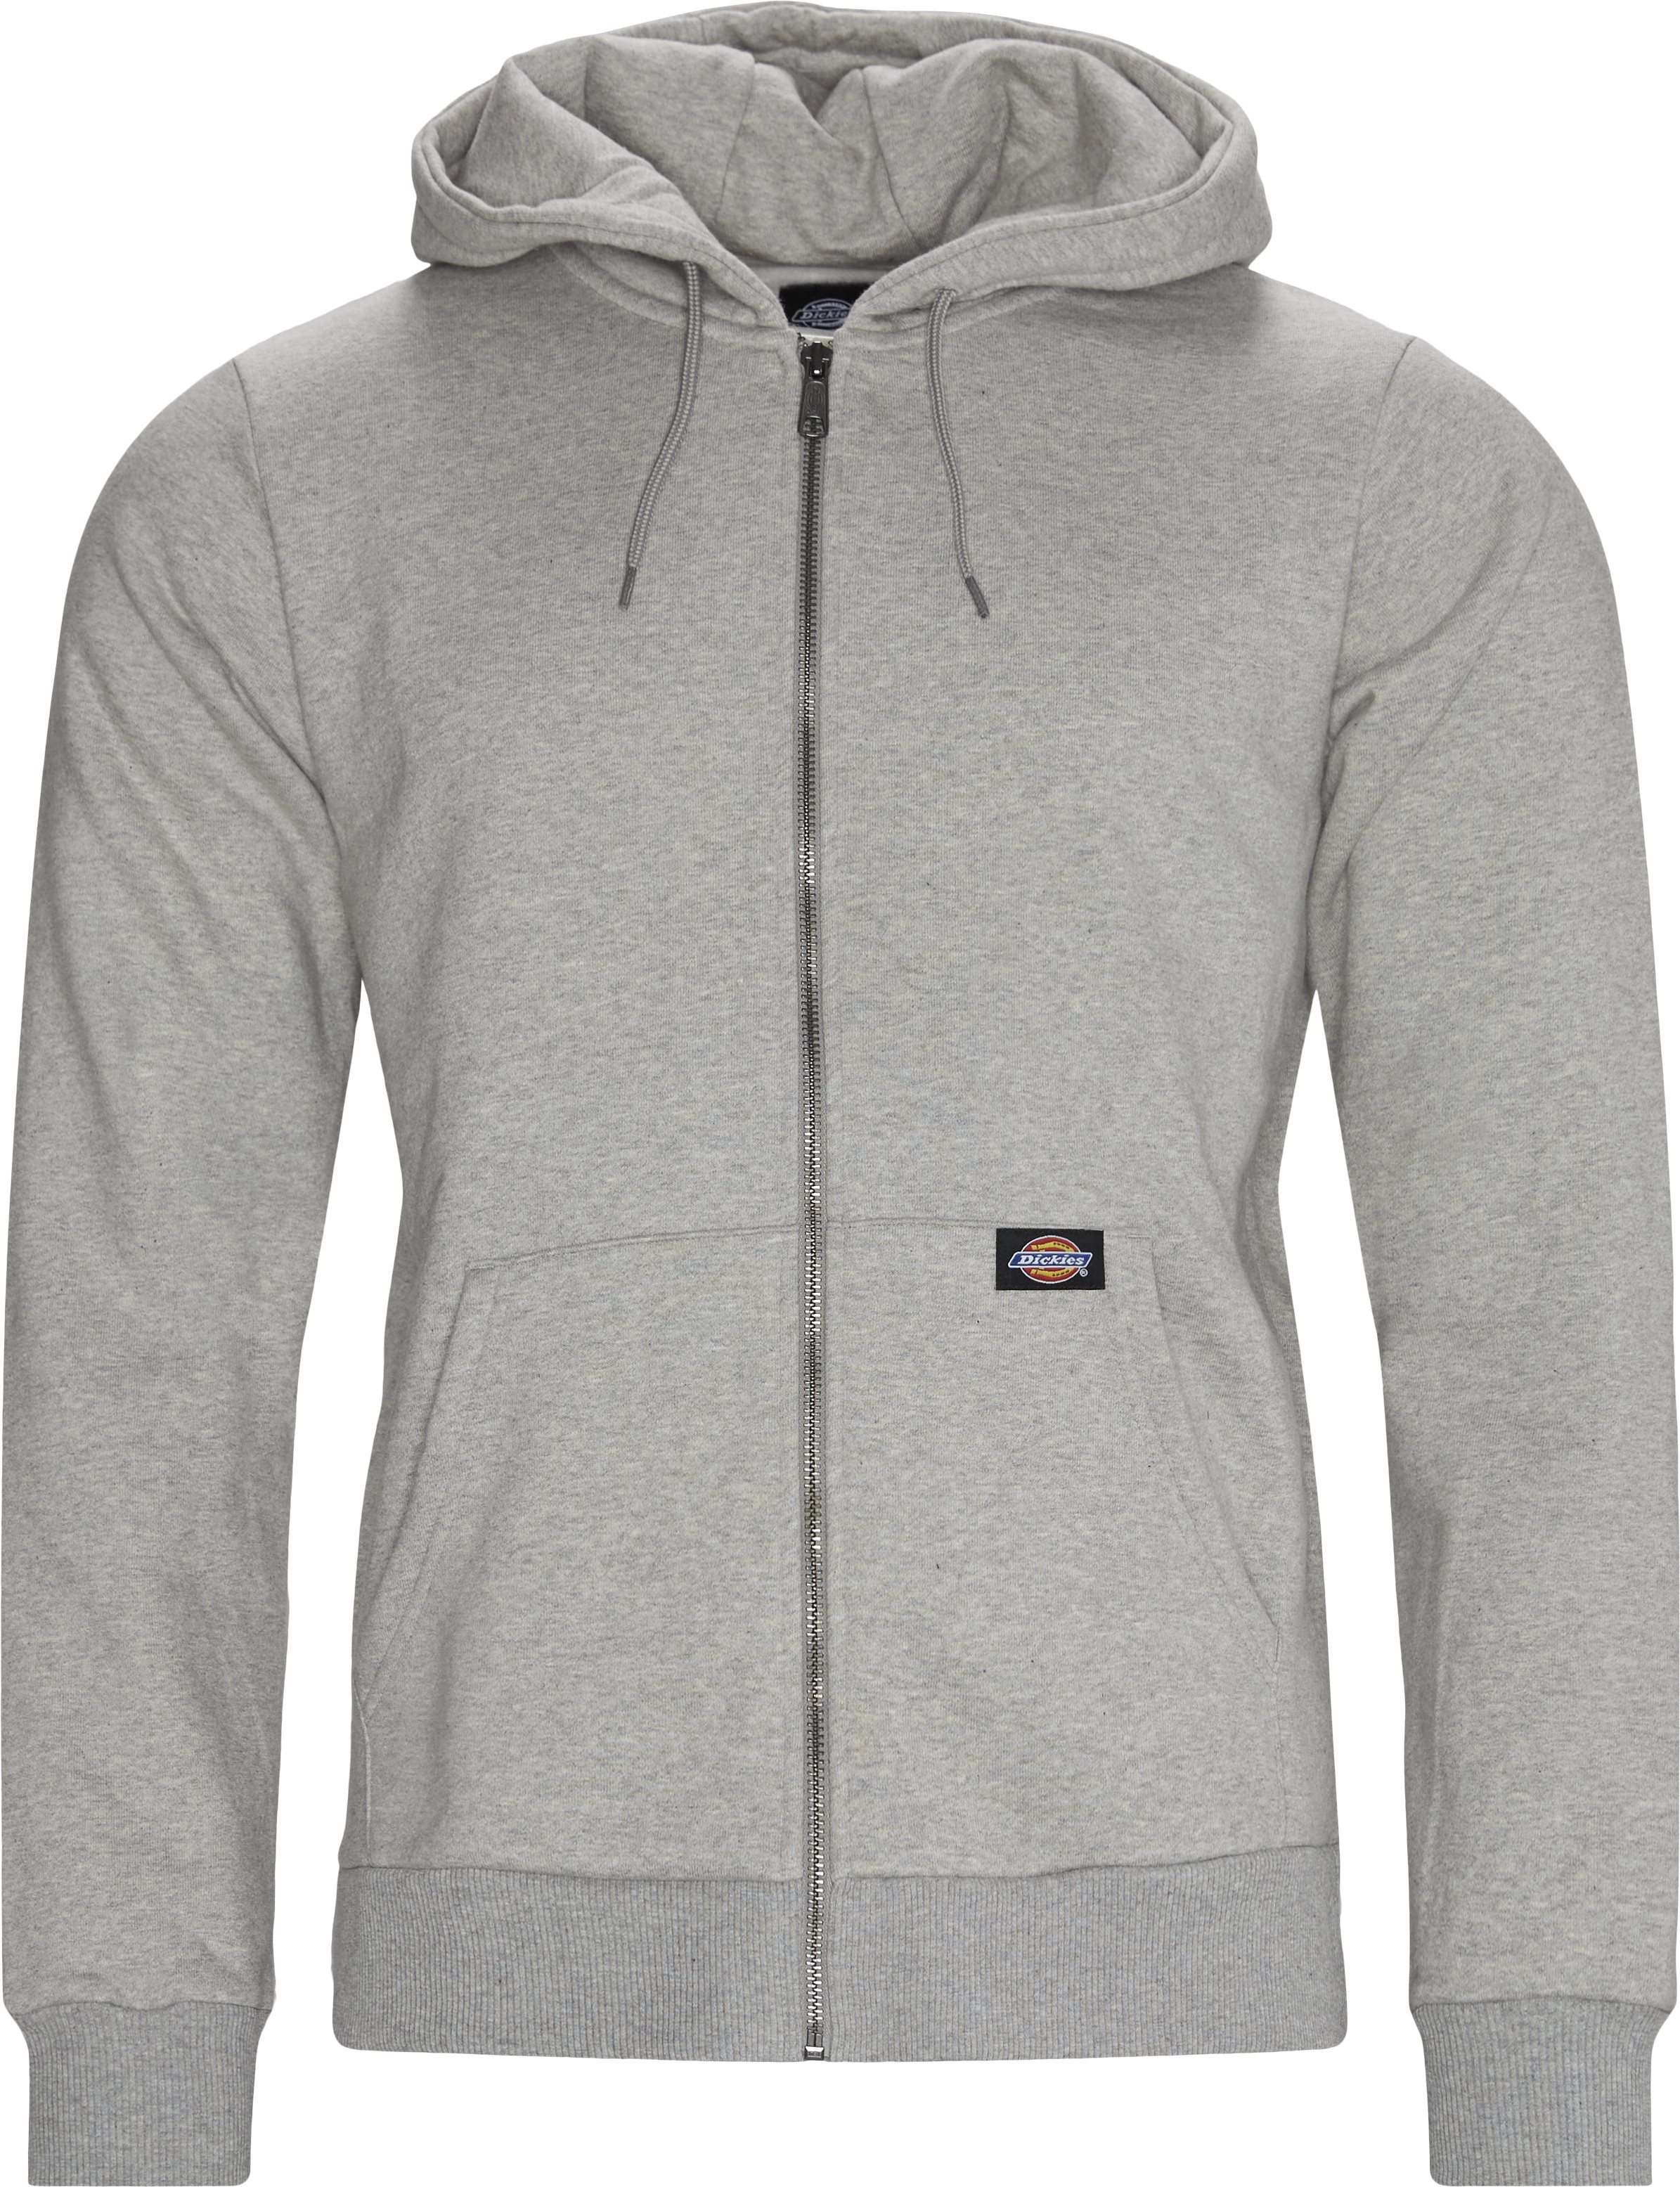 NEW KINGSLEY Hoodie - Sweatshirts - Regular - Grå